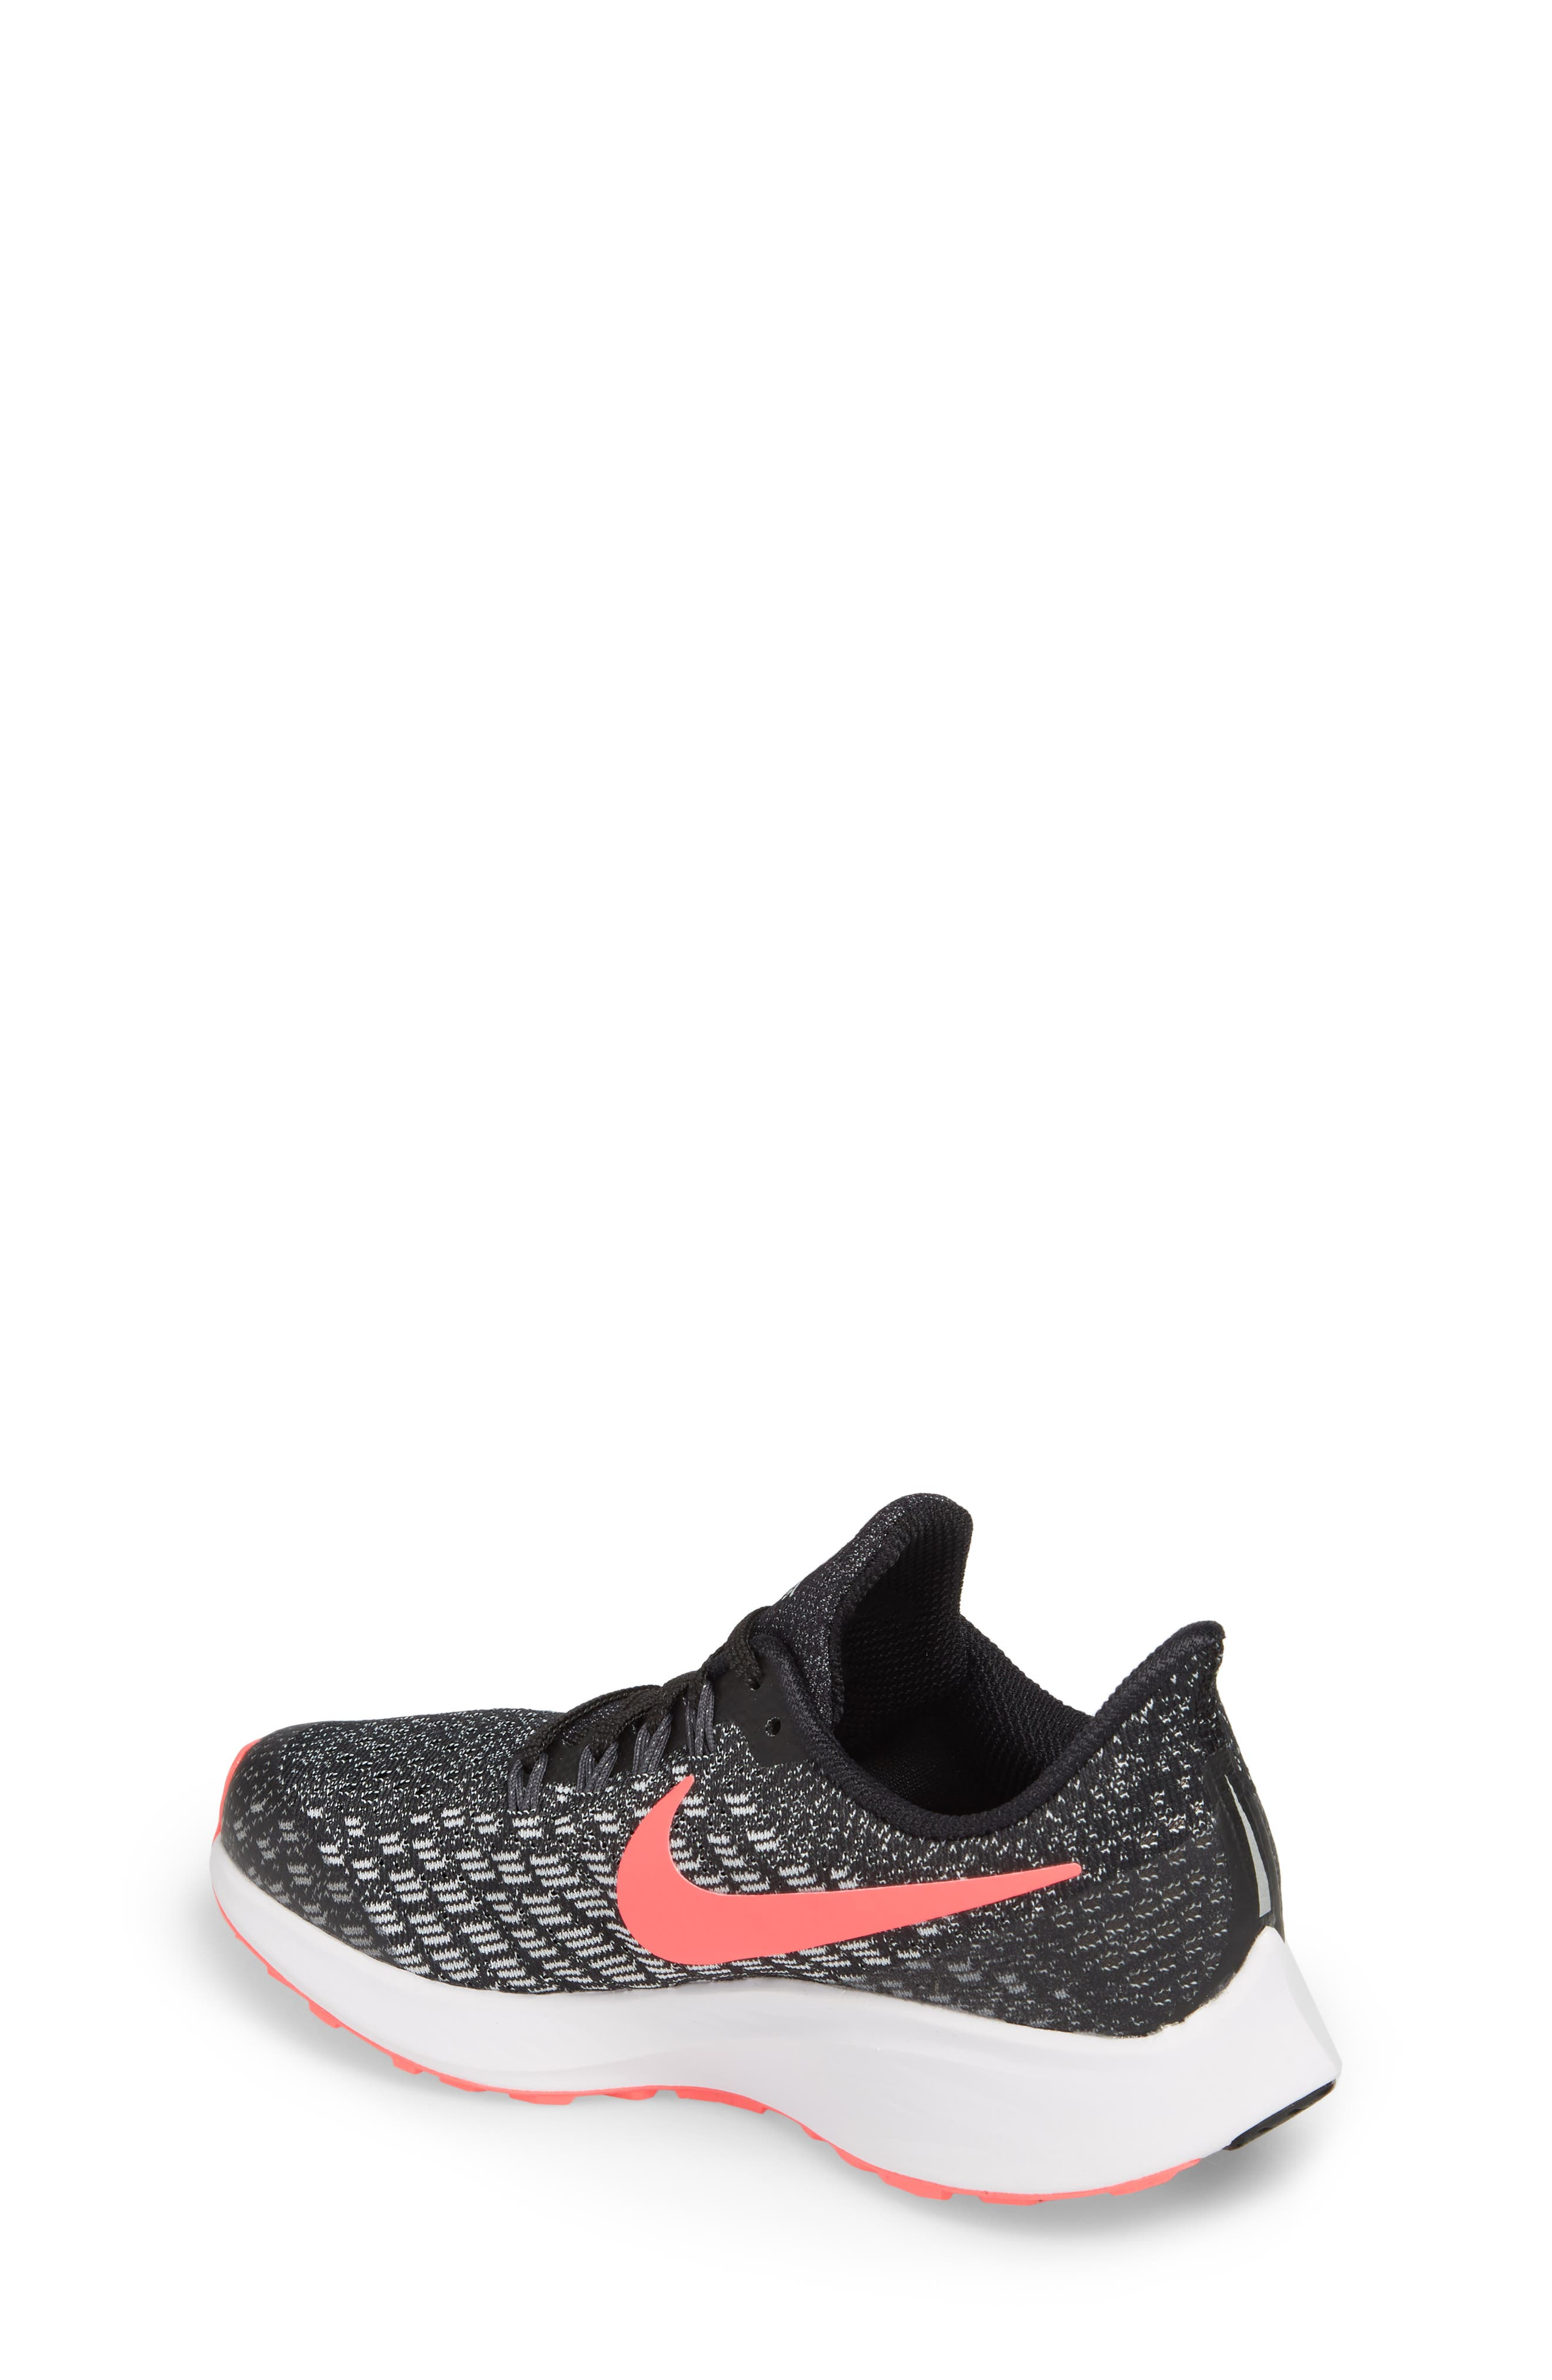 Air Zoom Pegasus 35 Sneaker,                             Alternate thumbnail 2, color,                             RACER PINK/ WHITE/ ANTHRACITE